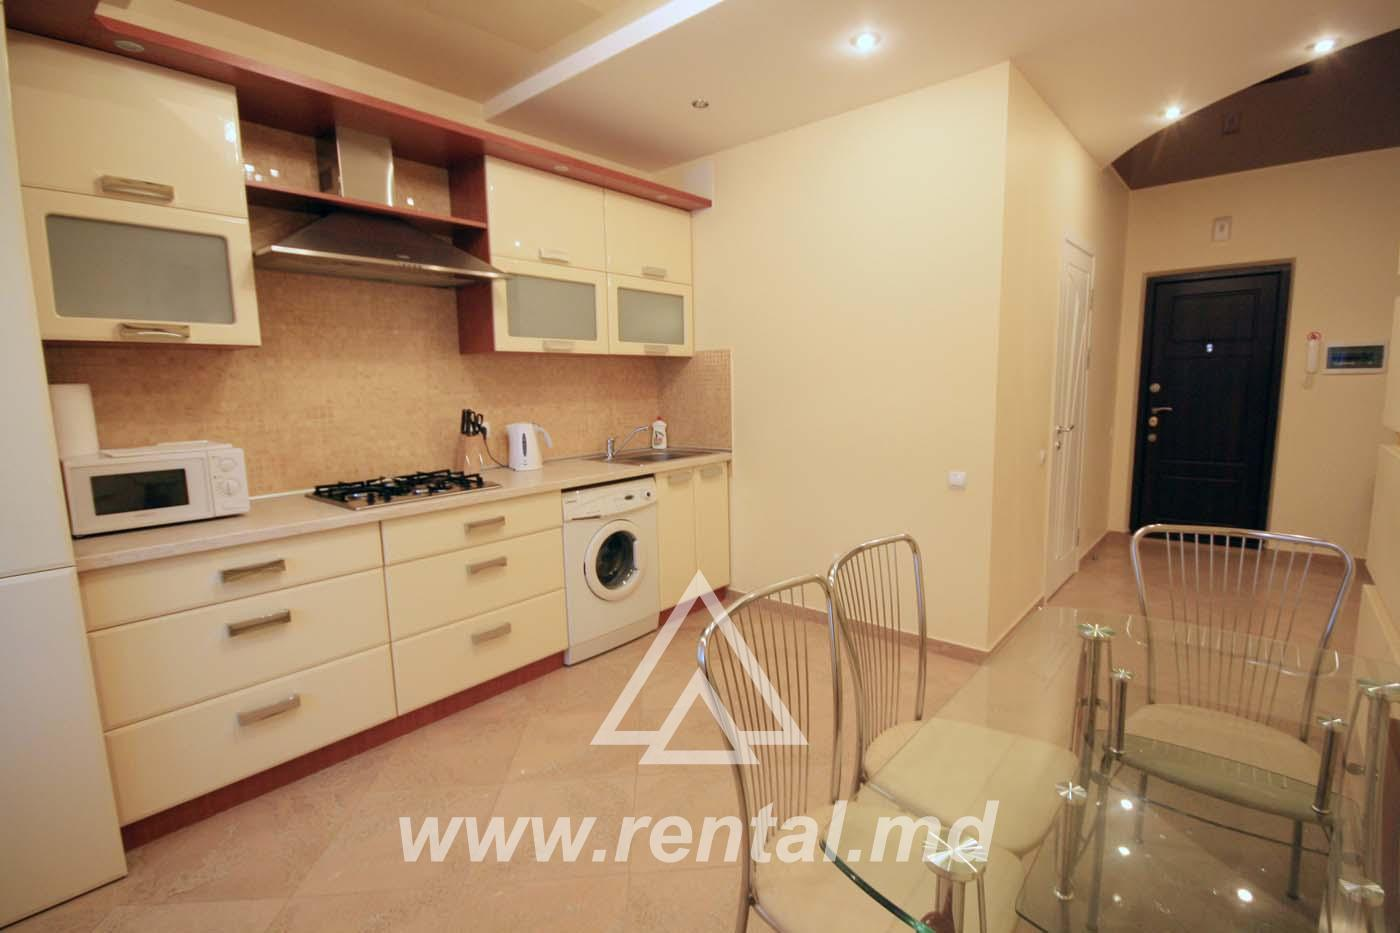 2-rooms apartment for rent in Chisinau